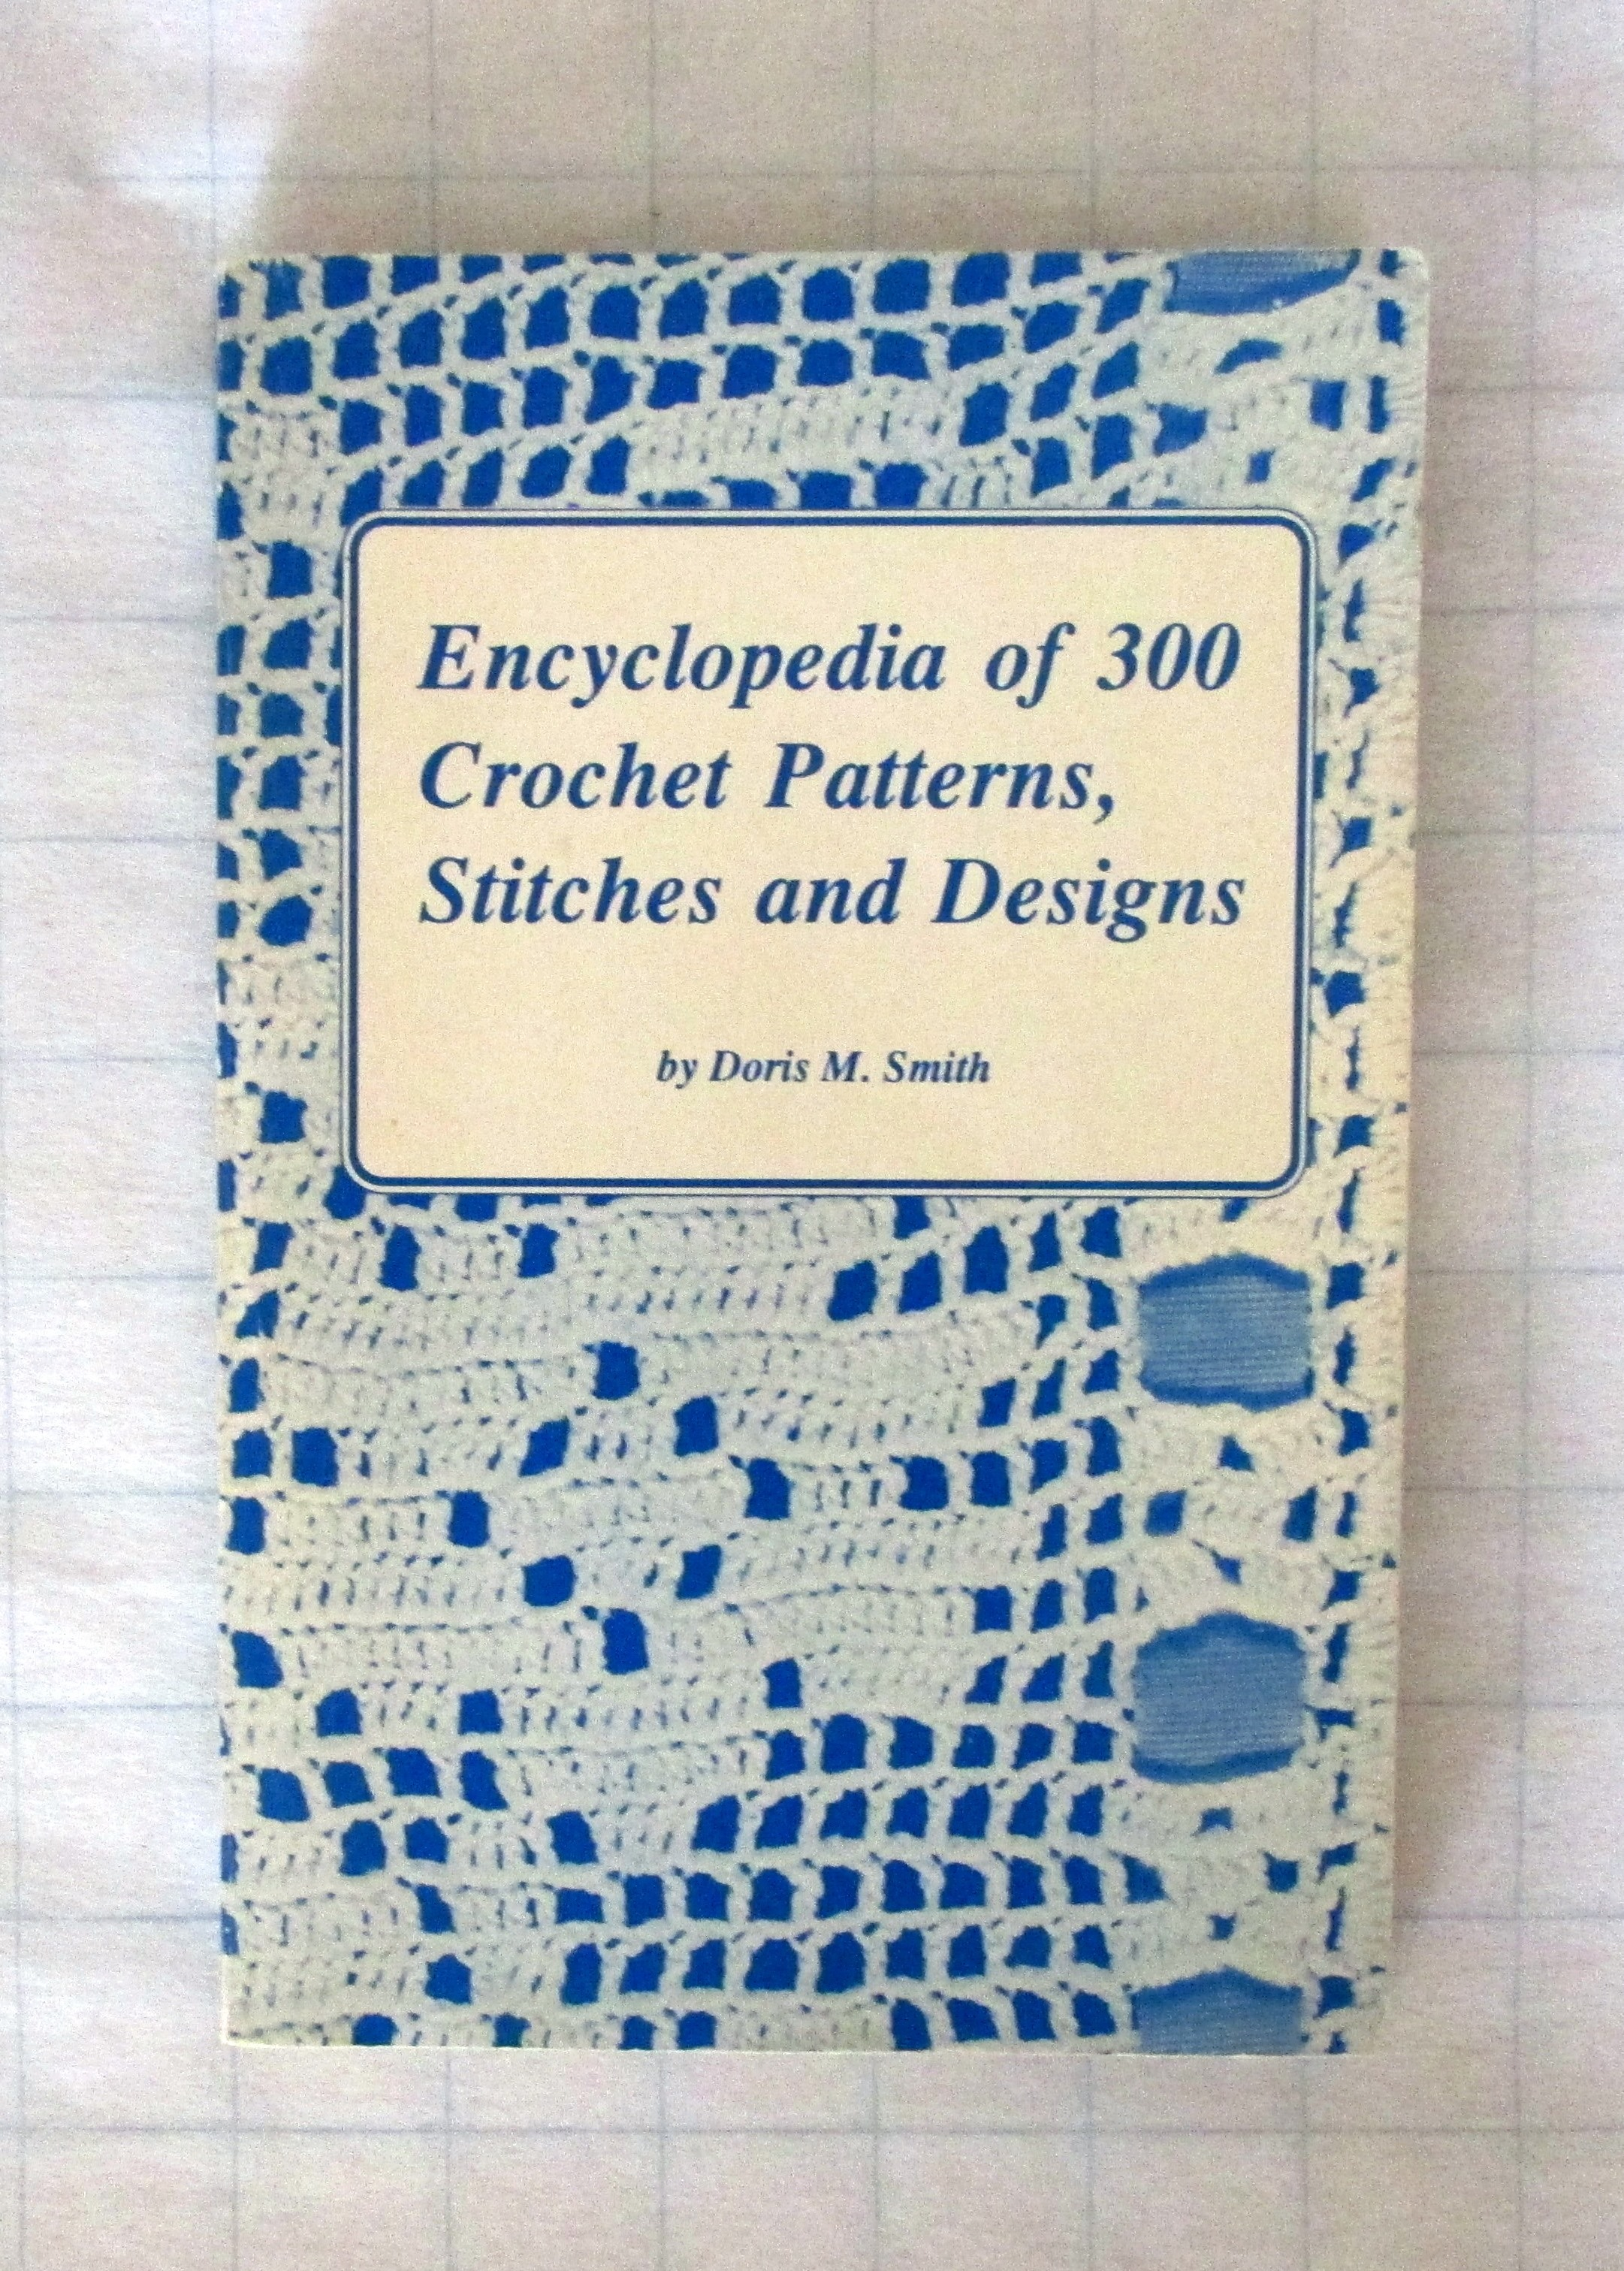 Books / Crochet Books / Encyclopedia of 300 Crochet Patterns, Stitches ...